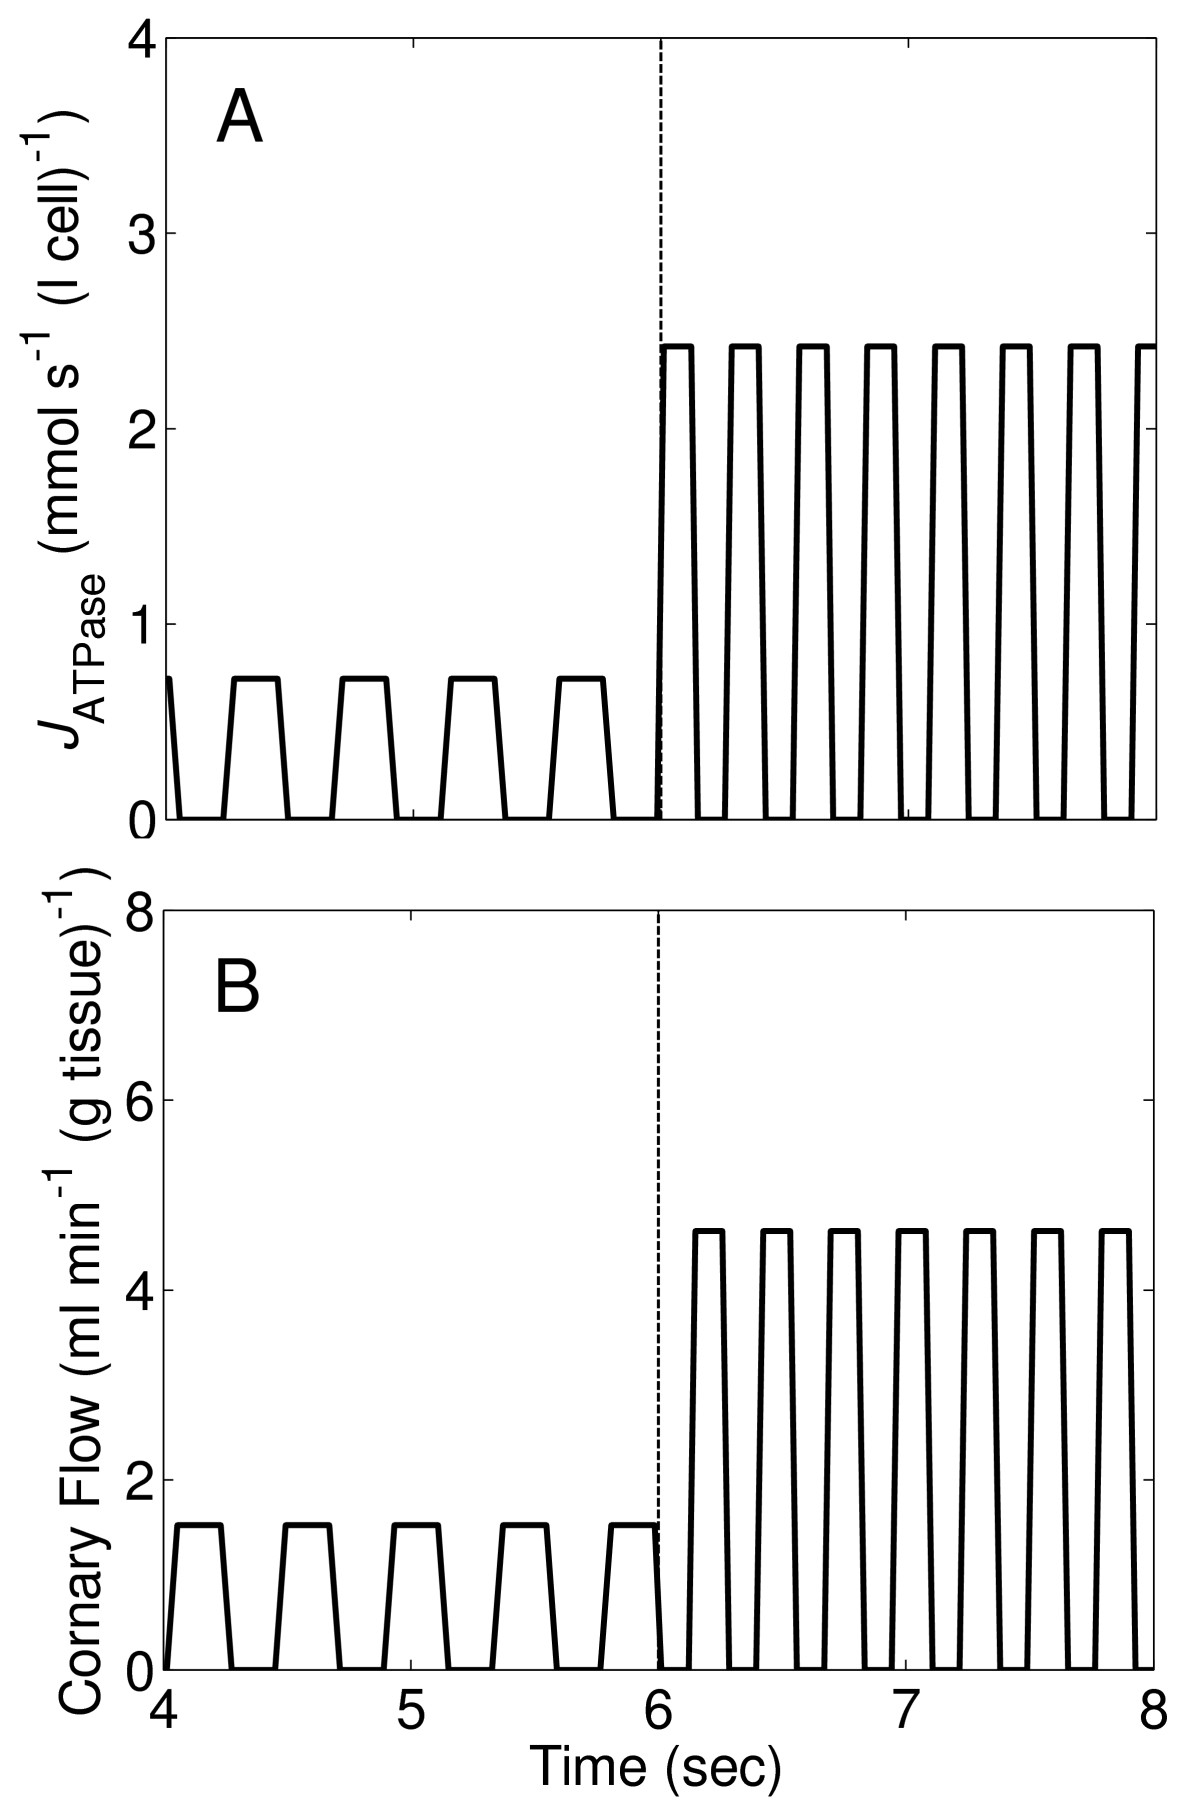 http://static-content.springer.com/image/art%3A10.1186%2F1752-0509-3-22/MediaObjects/12918_2008_Article_290_Fig3_HTML.jpg